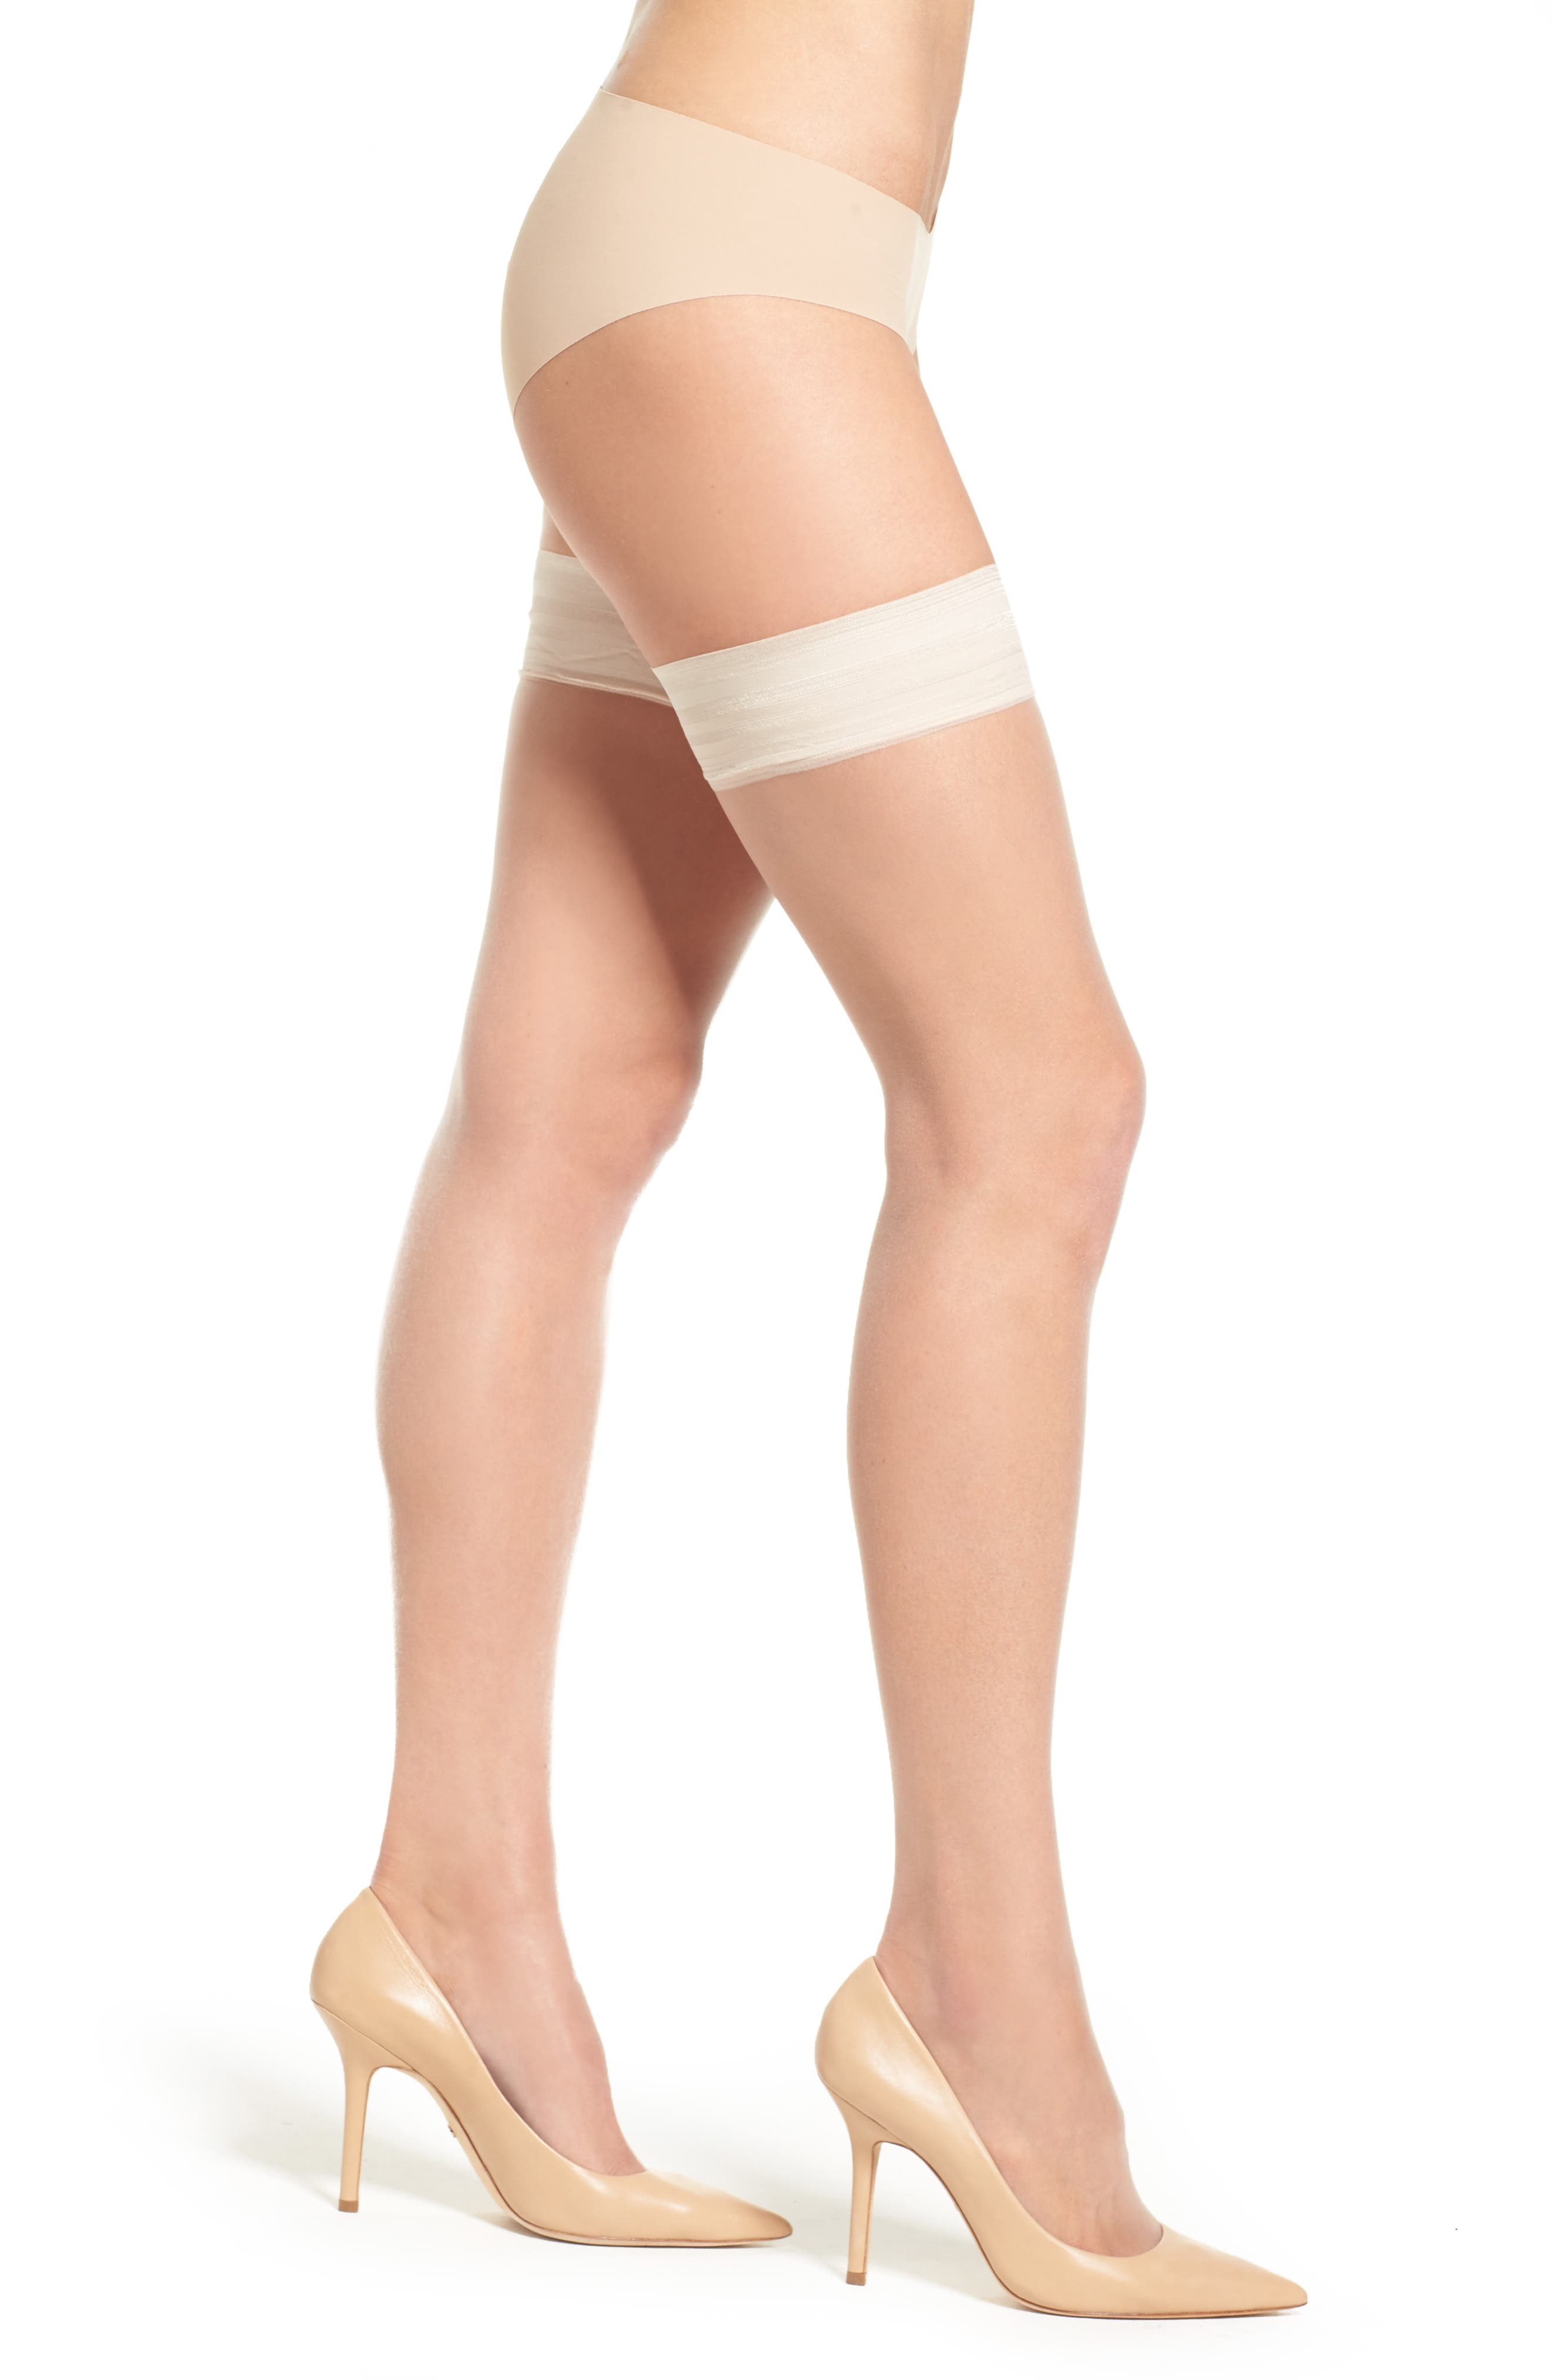 Donna Karan Beyond The Nudes Stay-Up Stockings,                         Main,                         color, 241